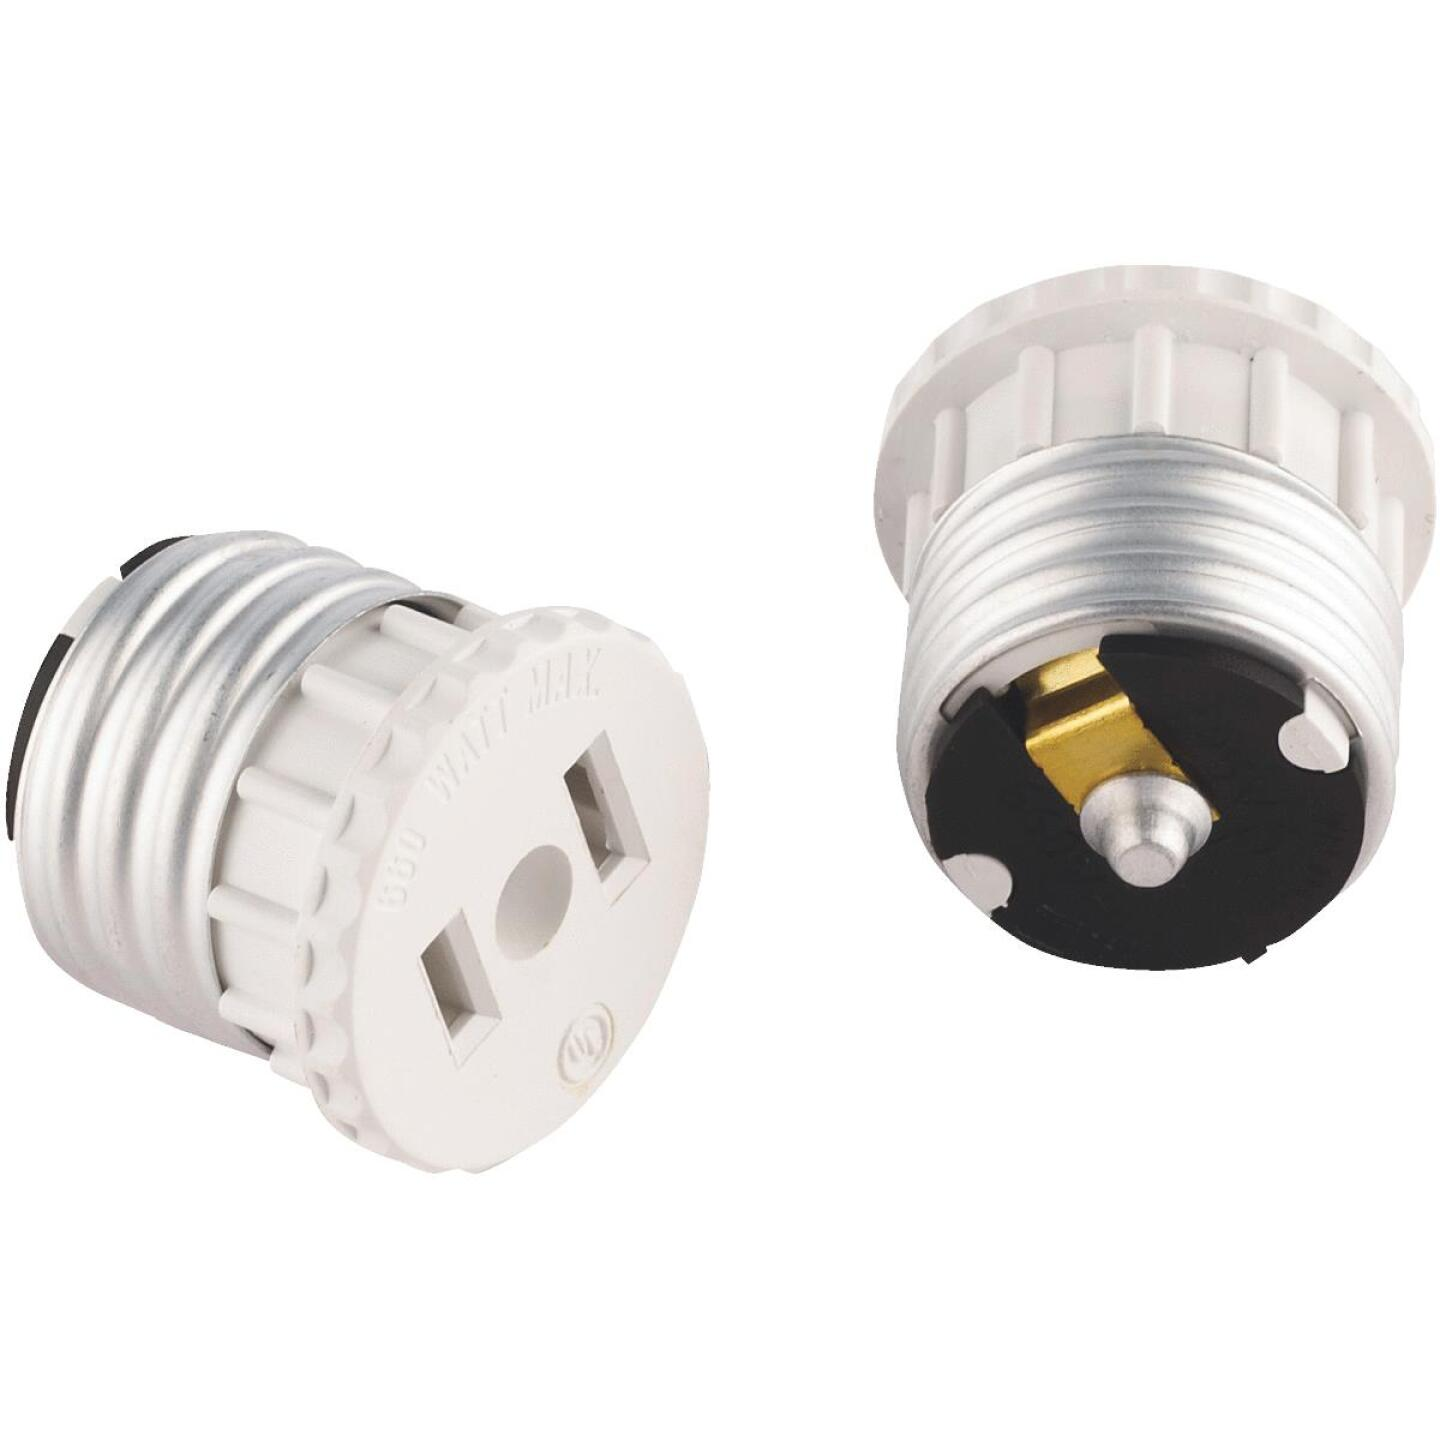 Leviton 600W 120V White Light Socket Adapter (2-Pack) Image 1